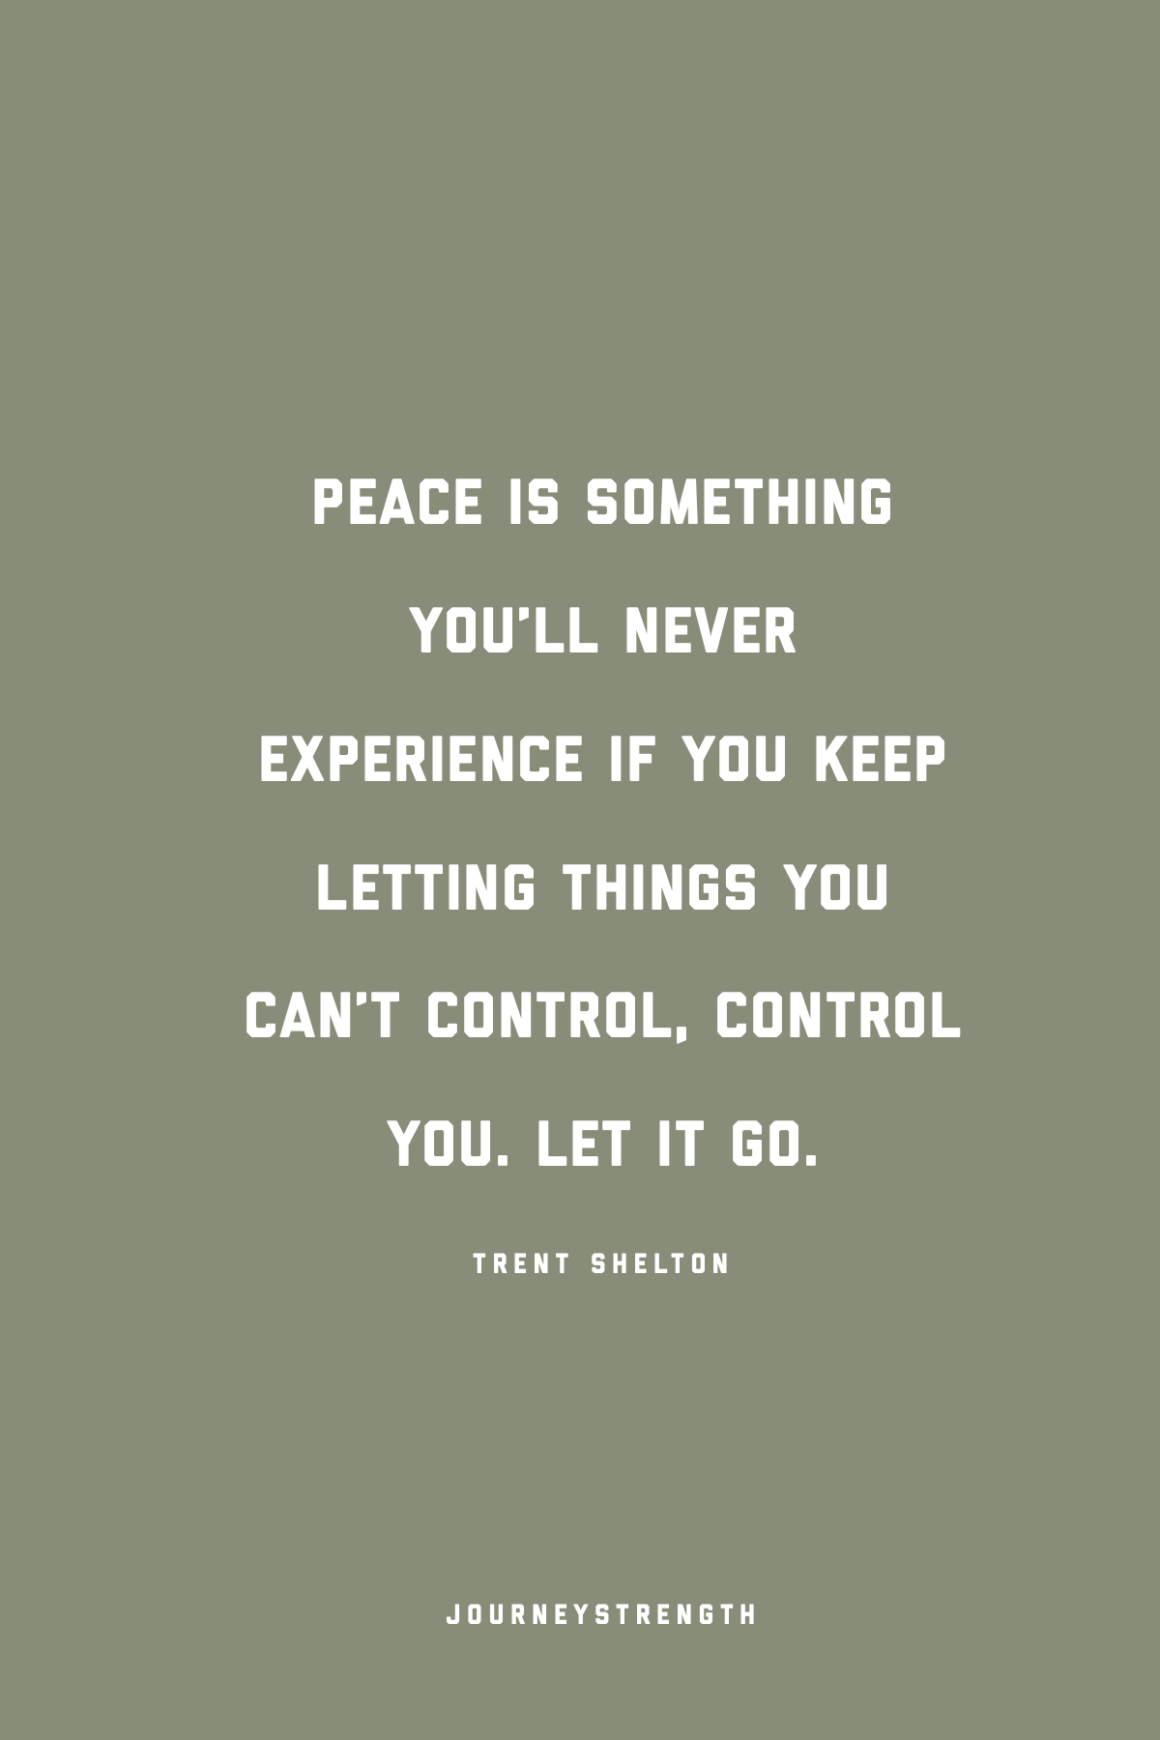 peace is something you'll never experience if you keep letting things you can't control, control you. Let it go.